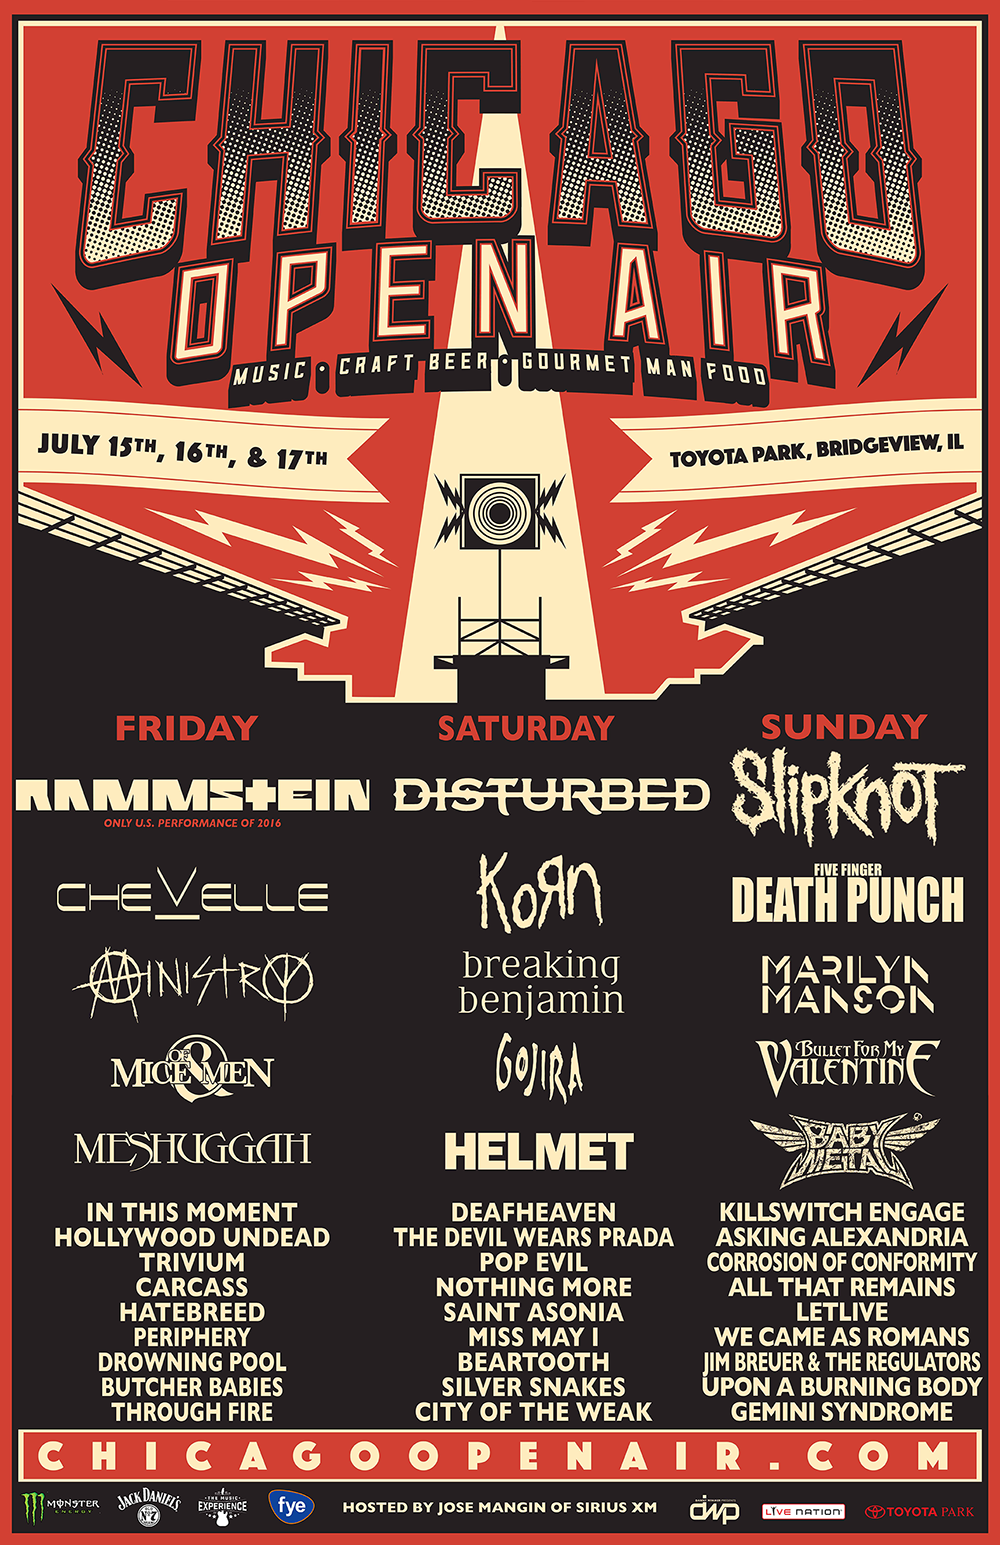 Chicago Open Air Festival 2016